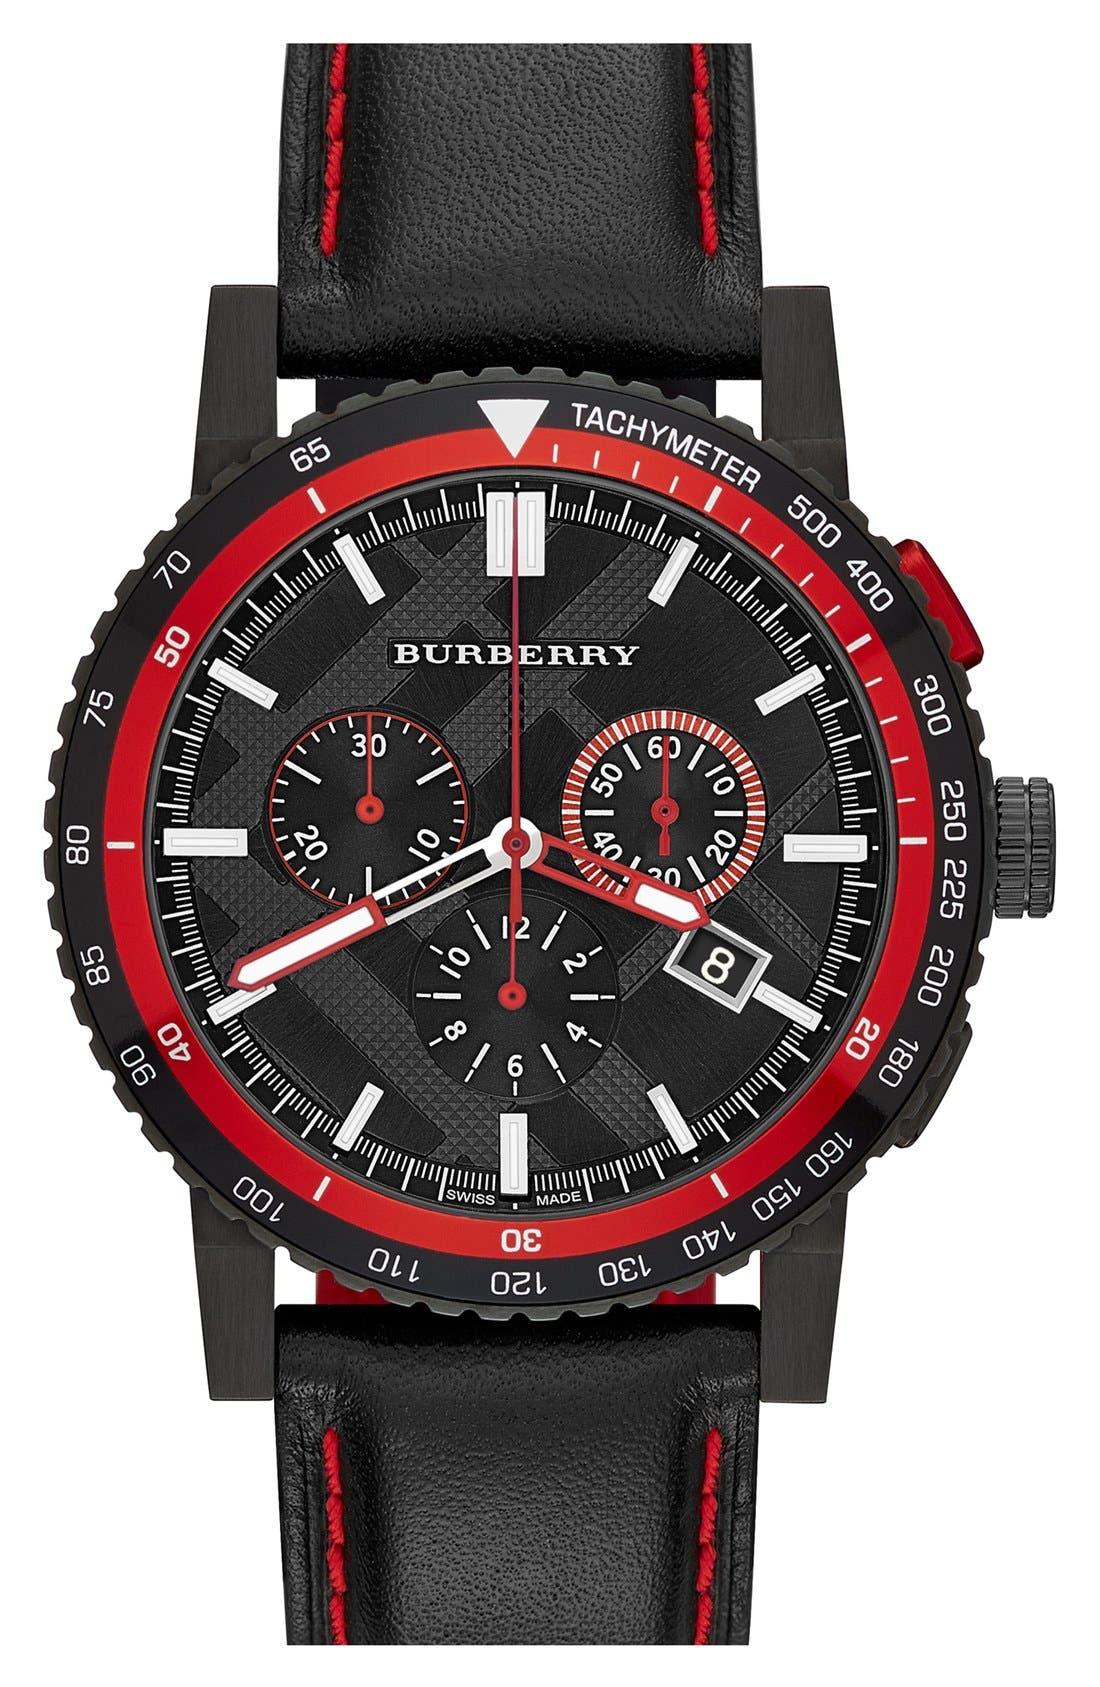 Main Image - Burberry Chronograph Leather Strap Watch, 42mm